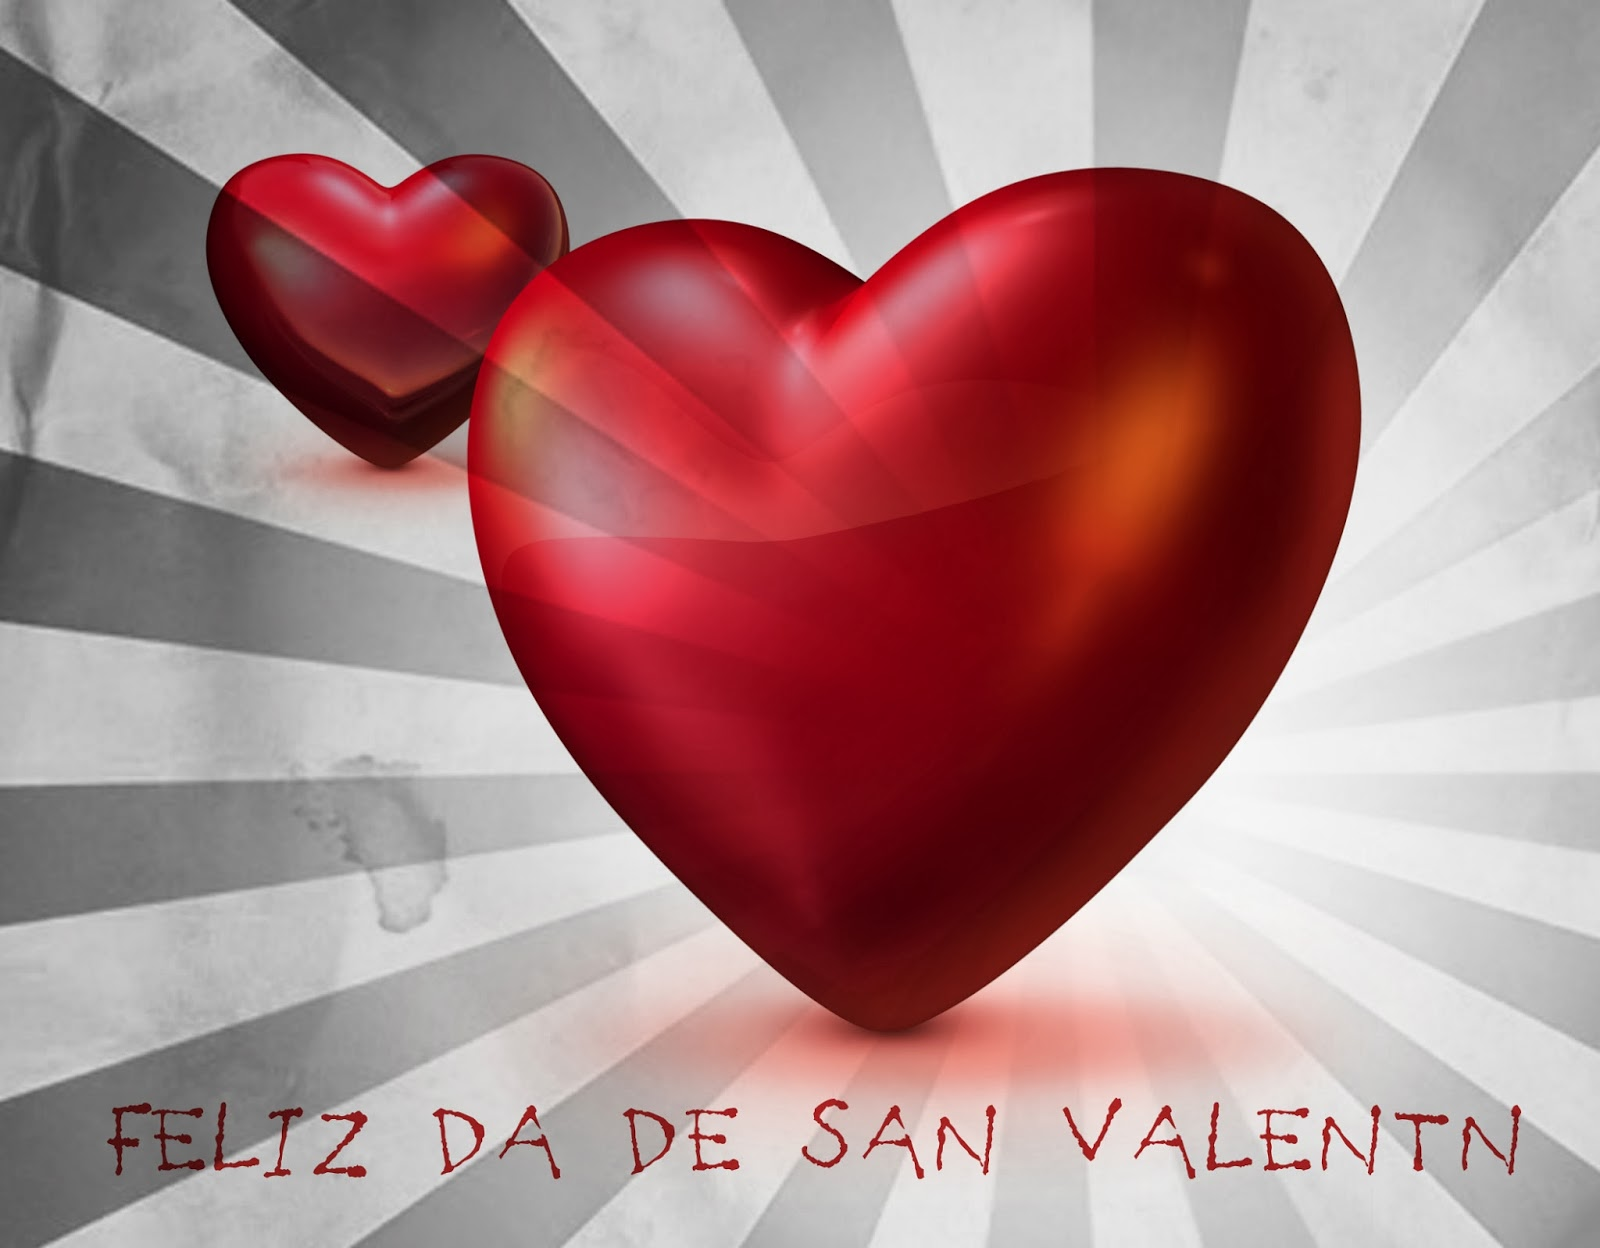 How To Say Happy Valentine's Day In Spanish